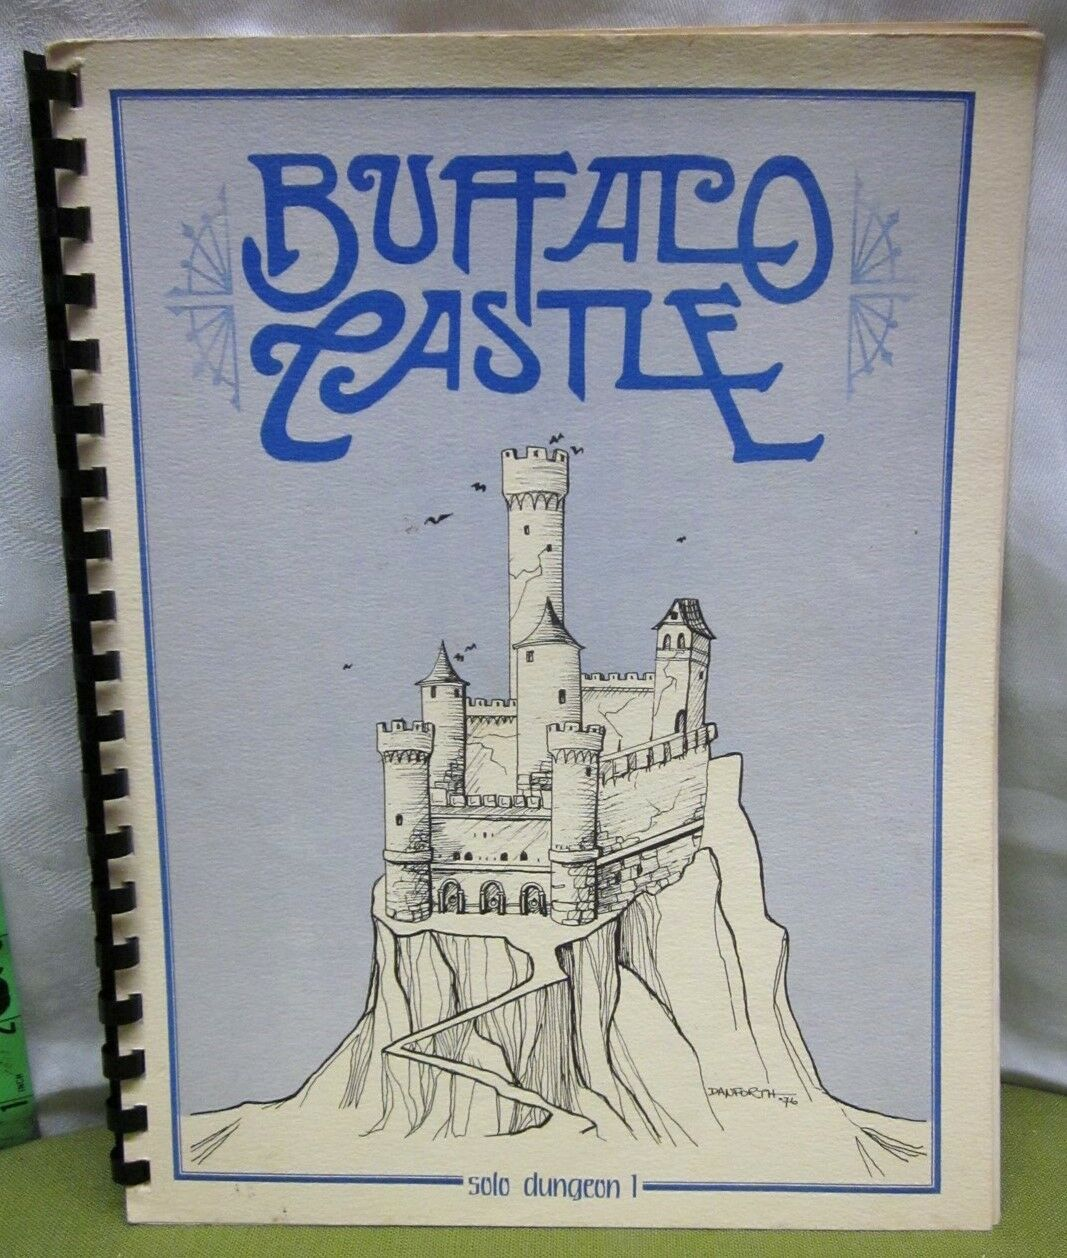 BUFFALO CASTLE Solo Dungeon Dungeon Dungeon supplement RPG role-playing libro 1976 Tunnels Trolls a85a86